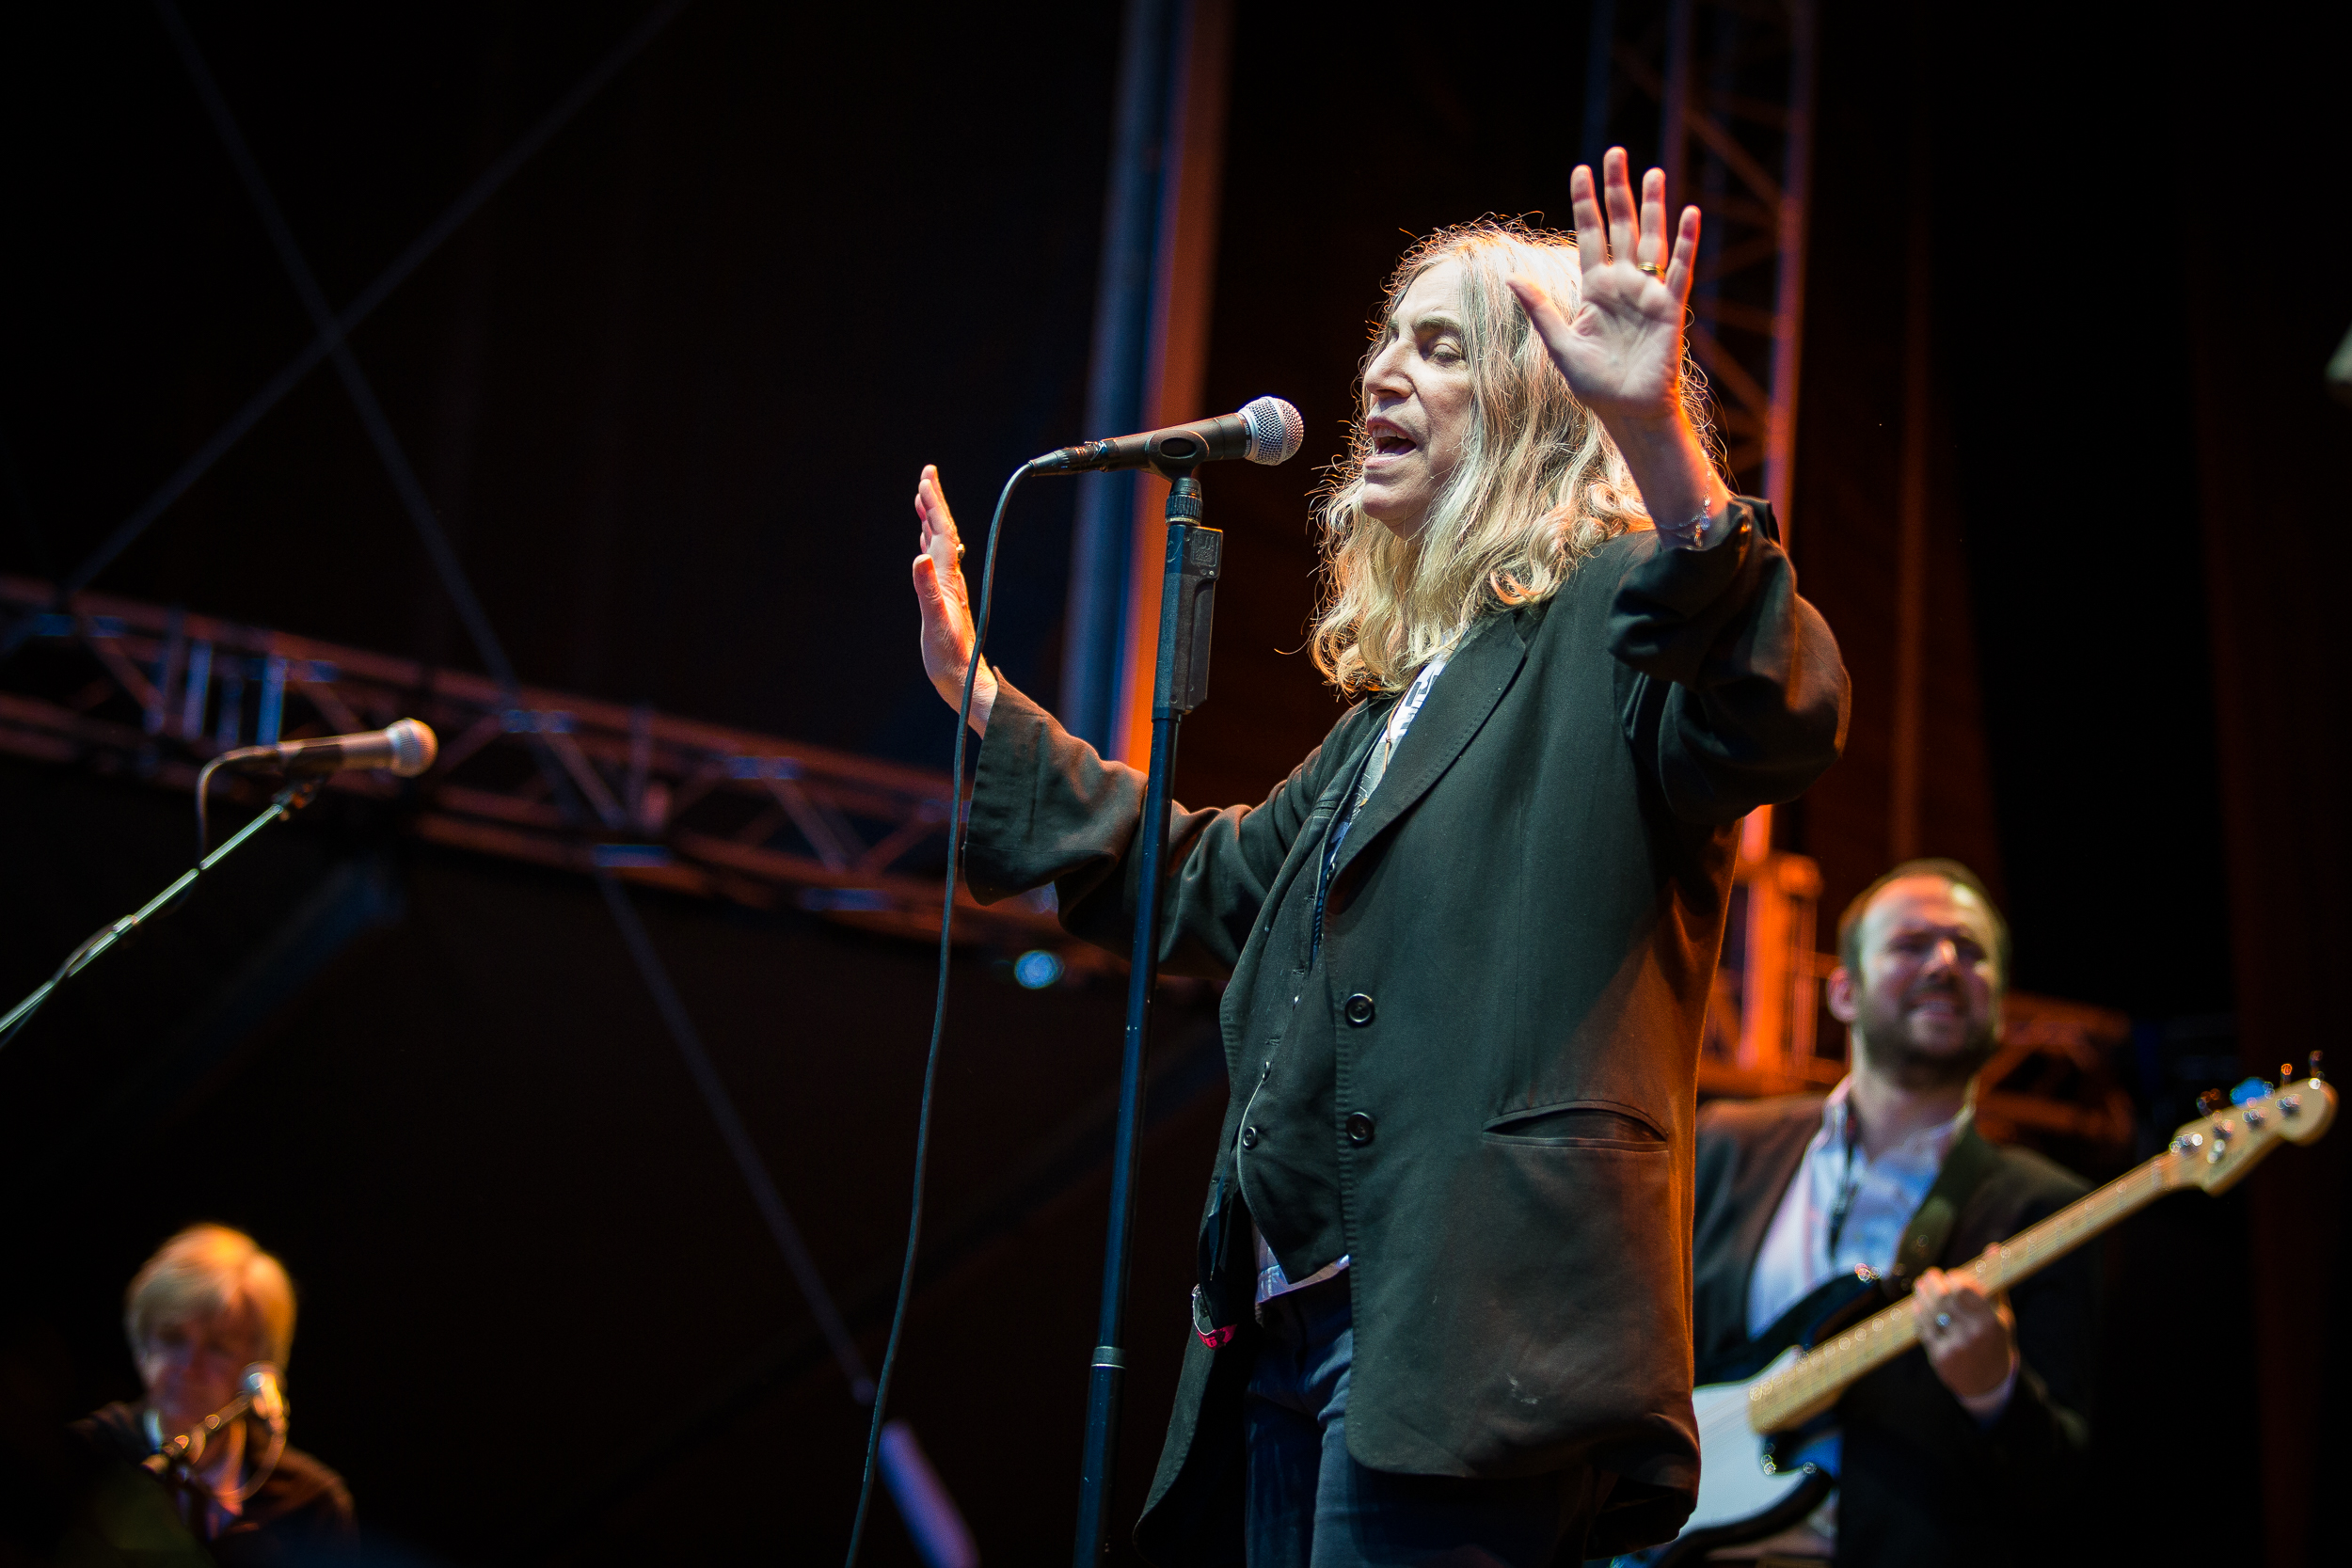 Patti Smith live at Bergenfest 2015, Bergen.